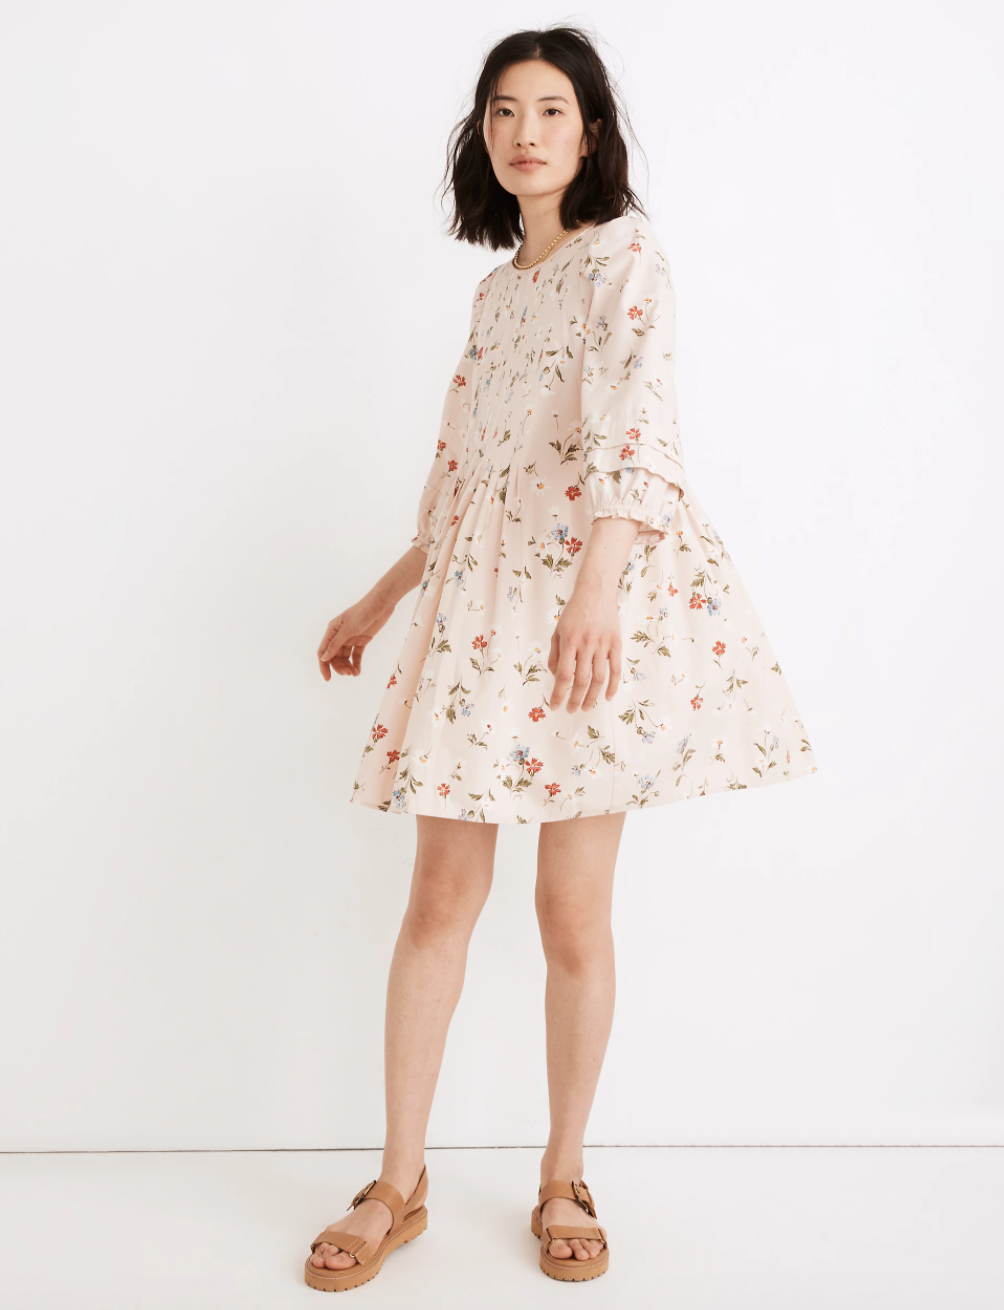 a model in a pale pink dress with puffy quarter sleeves and a floral print